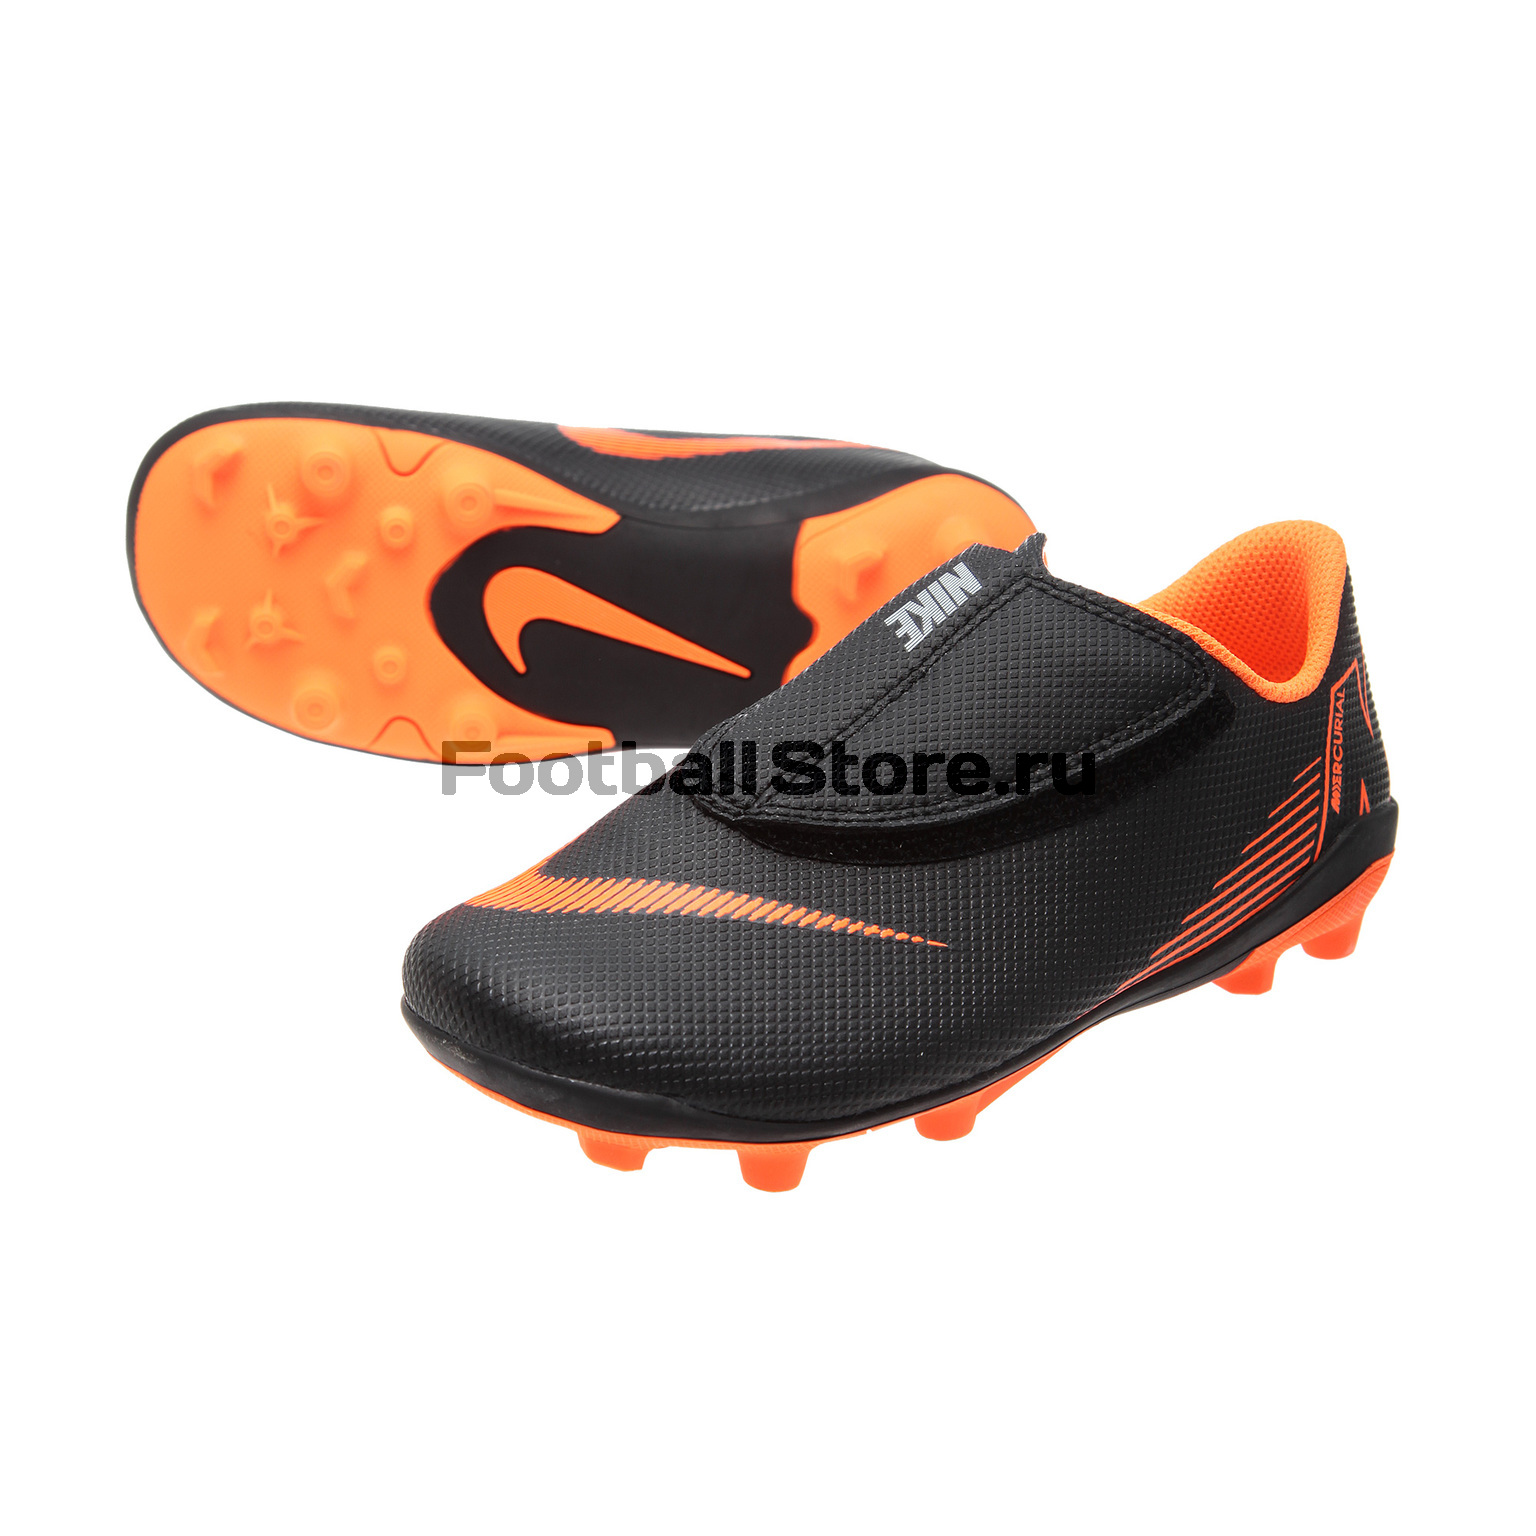 Бутсы детские Nike Vapor 12 Club PS FG/MG AH7351-081 бутсы nike vapor 12 club fg mg ah7378 810